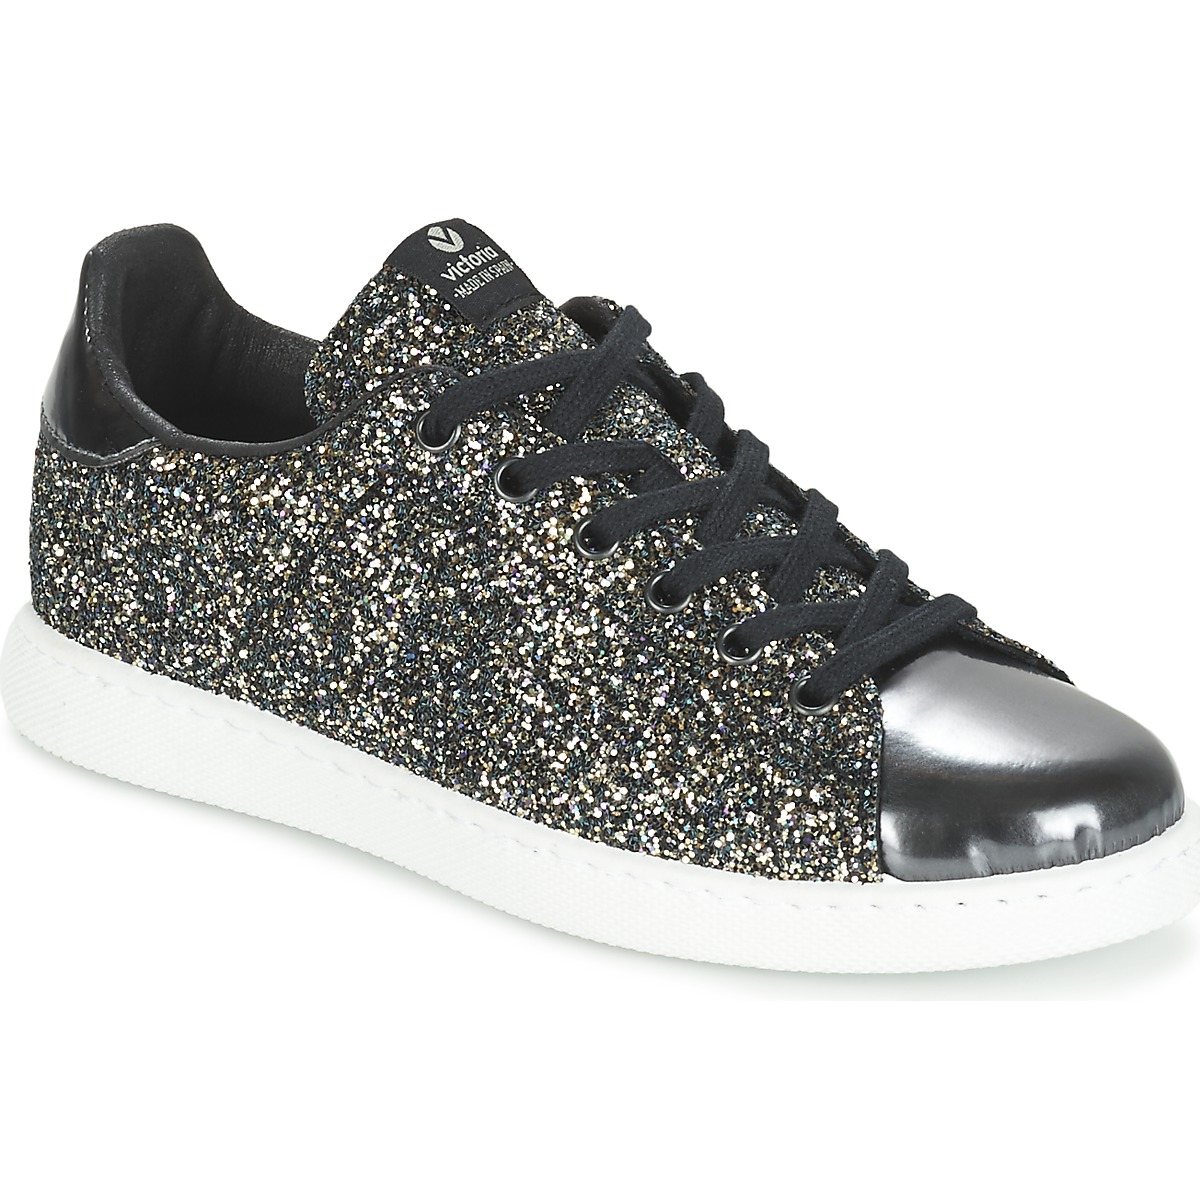 Marques Chaussure femme Victoria femme Deportivo Glitter Contraste Negro